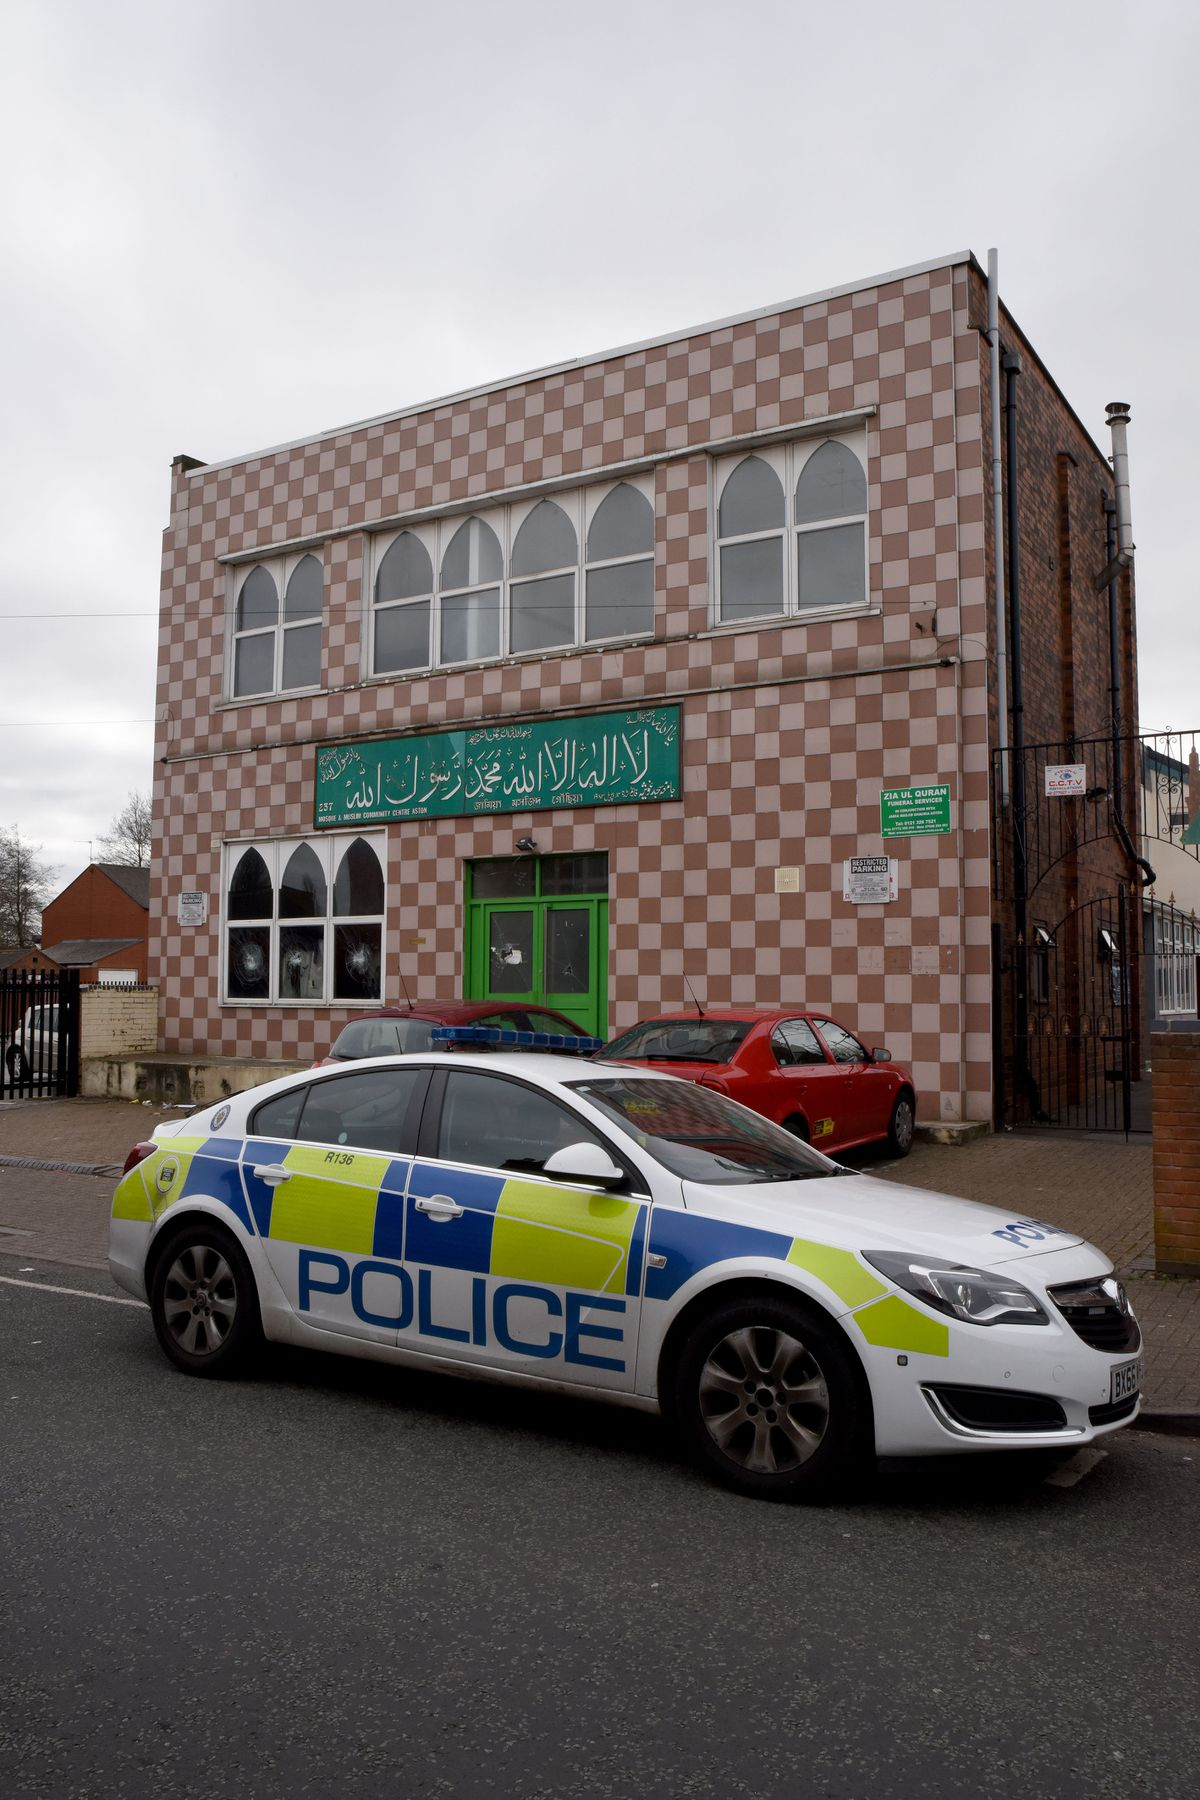 One of the mosques smashed - in Aston, Birmingham. Picture by Caters News